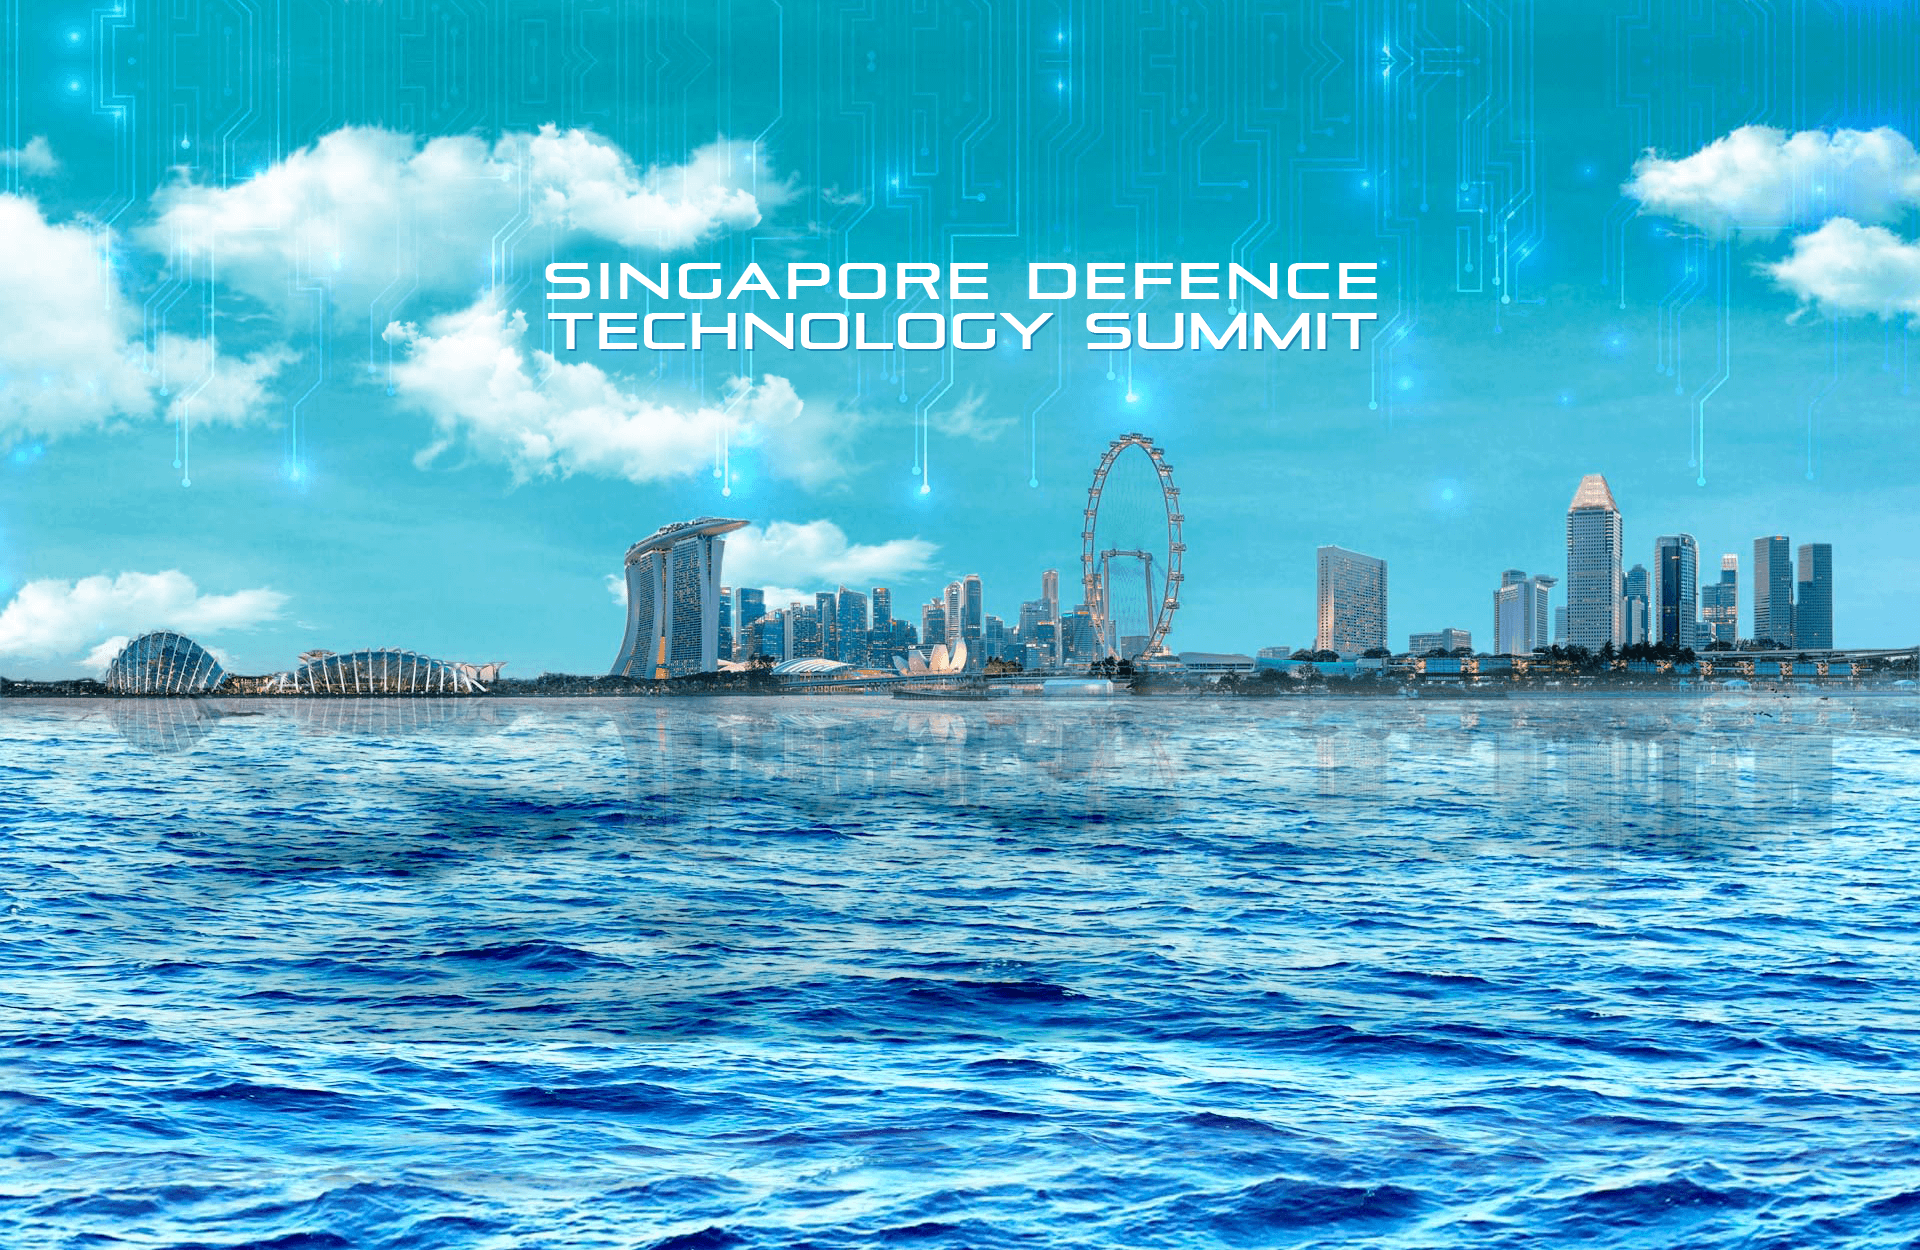 SINGAPORE DEFENCE TECHNOLOGY SUMMIT